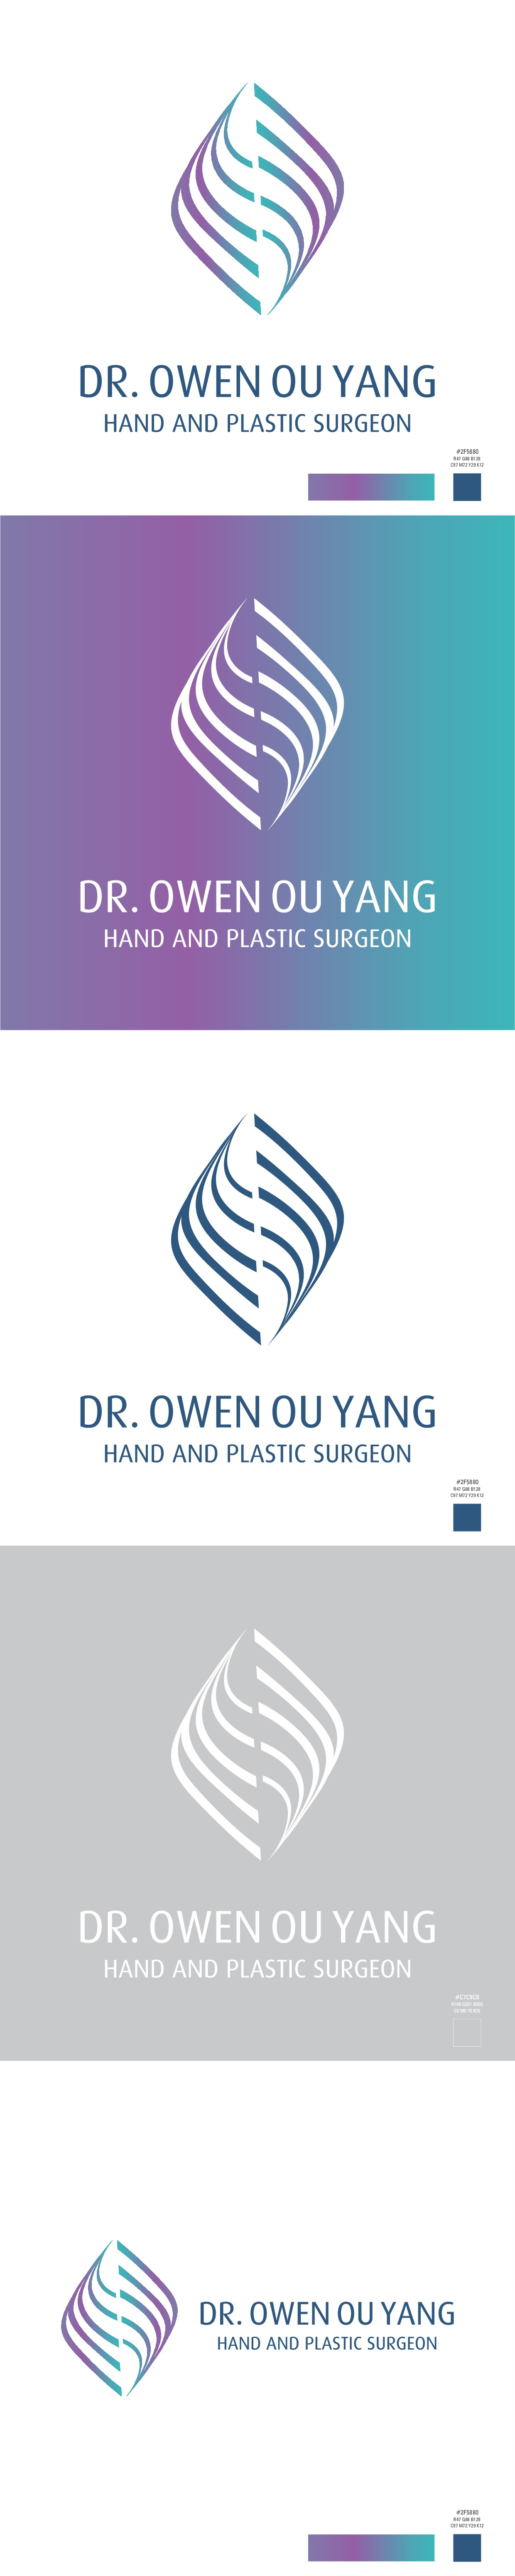 Hand and Plastic Surgeon look for a new brand